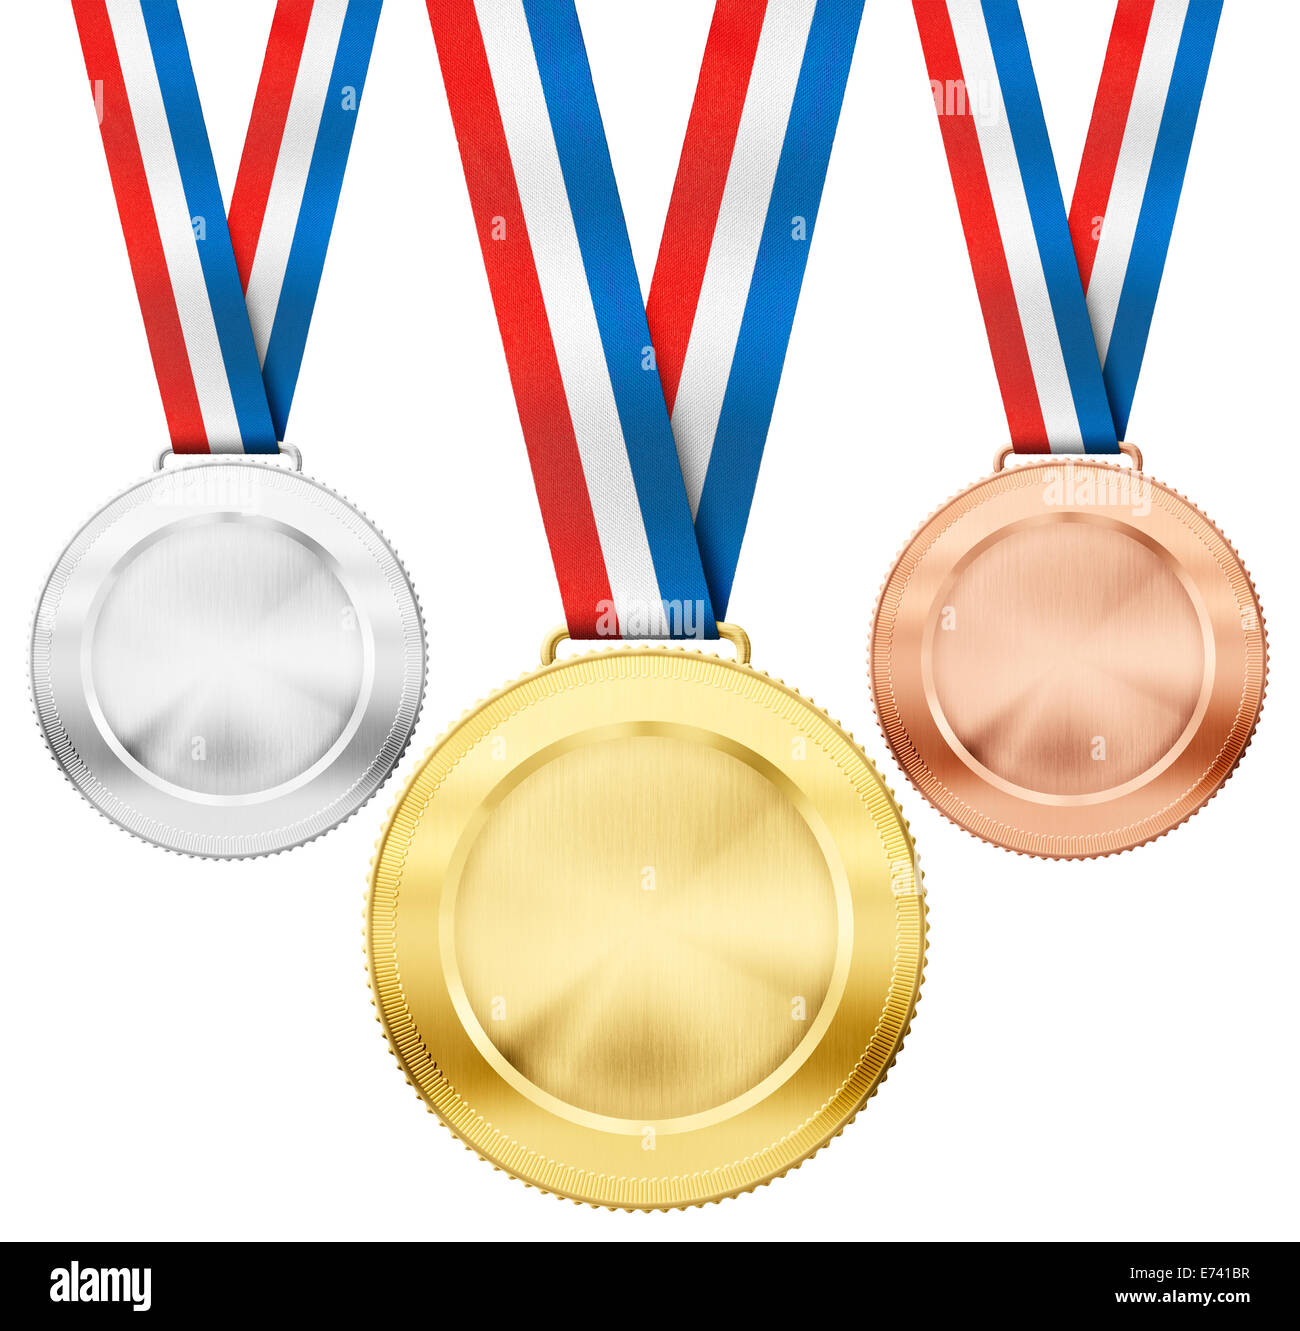 gold, silver, bronze realistic sport medals with tricolor ribbon set isolated on white - Stock Image